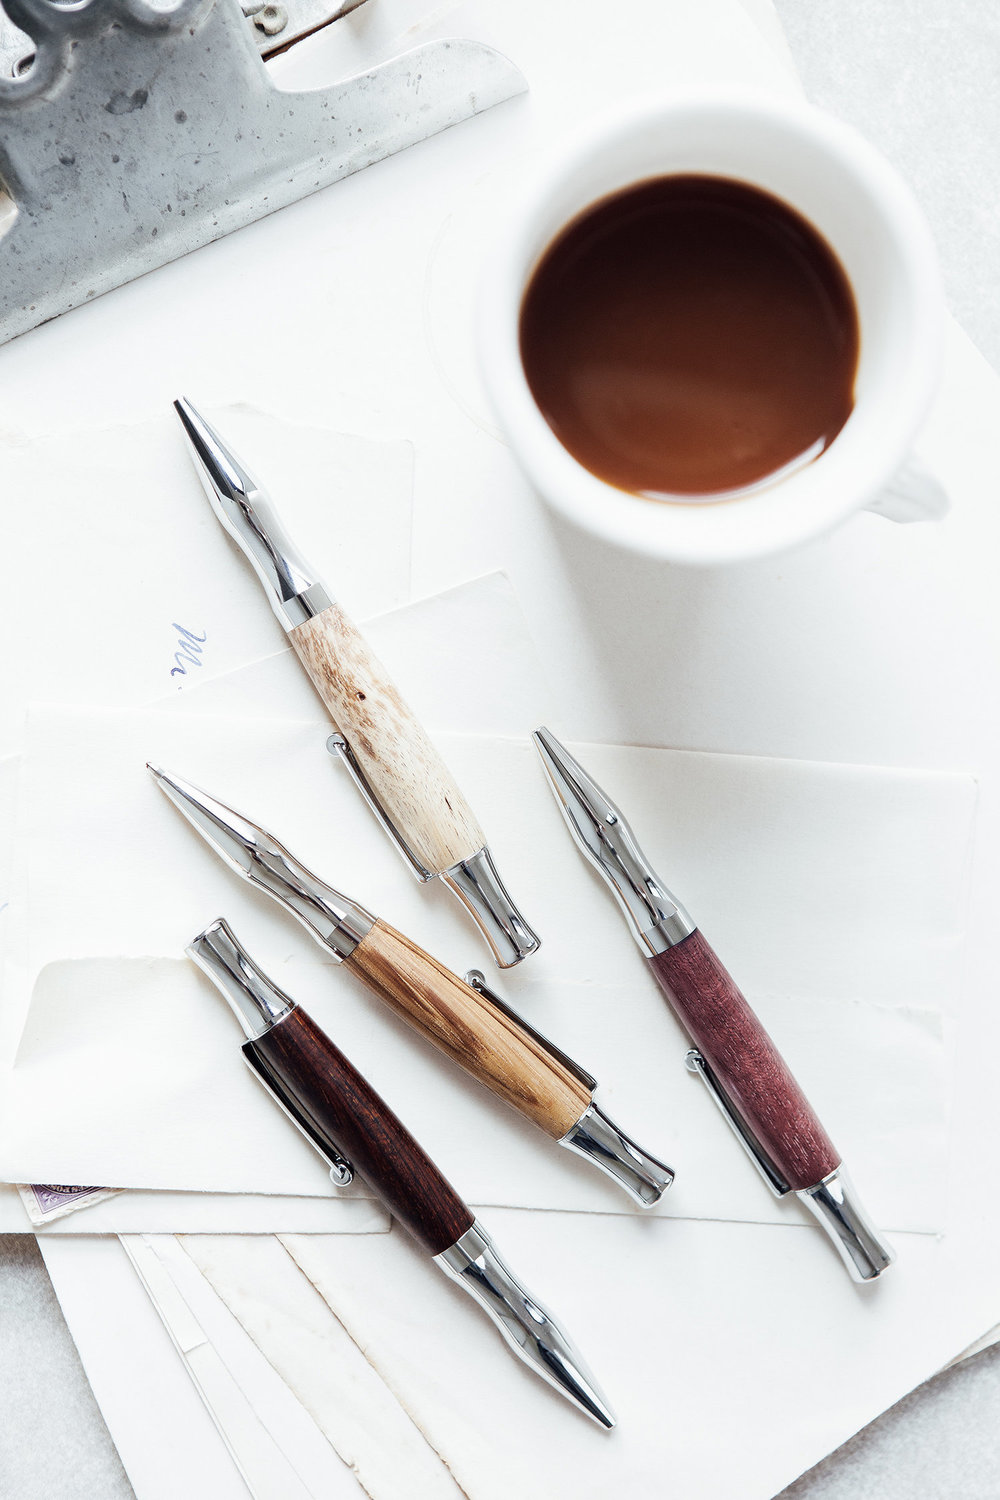 Tiff-wood-pen-etsy-unique-gift-handcraft-handmade-portland-fountain-pen-modern-art-chrome-group-2.jpg